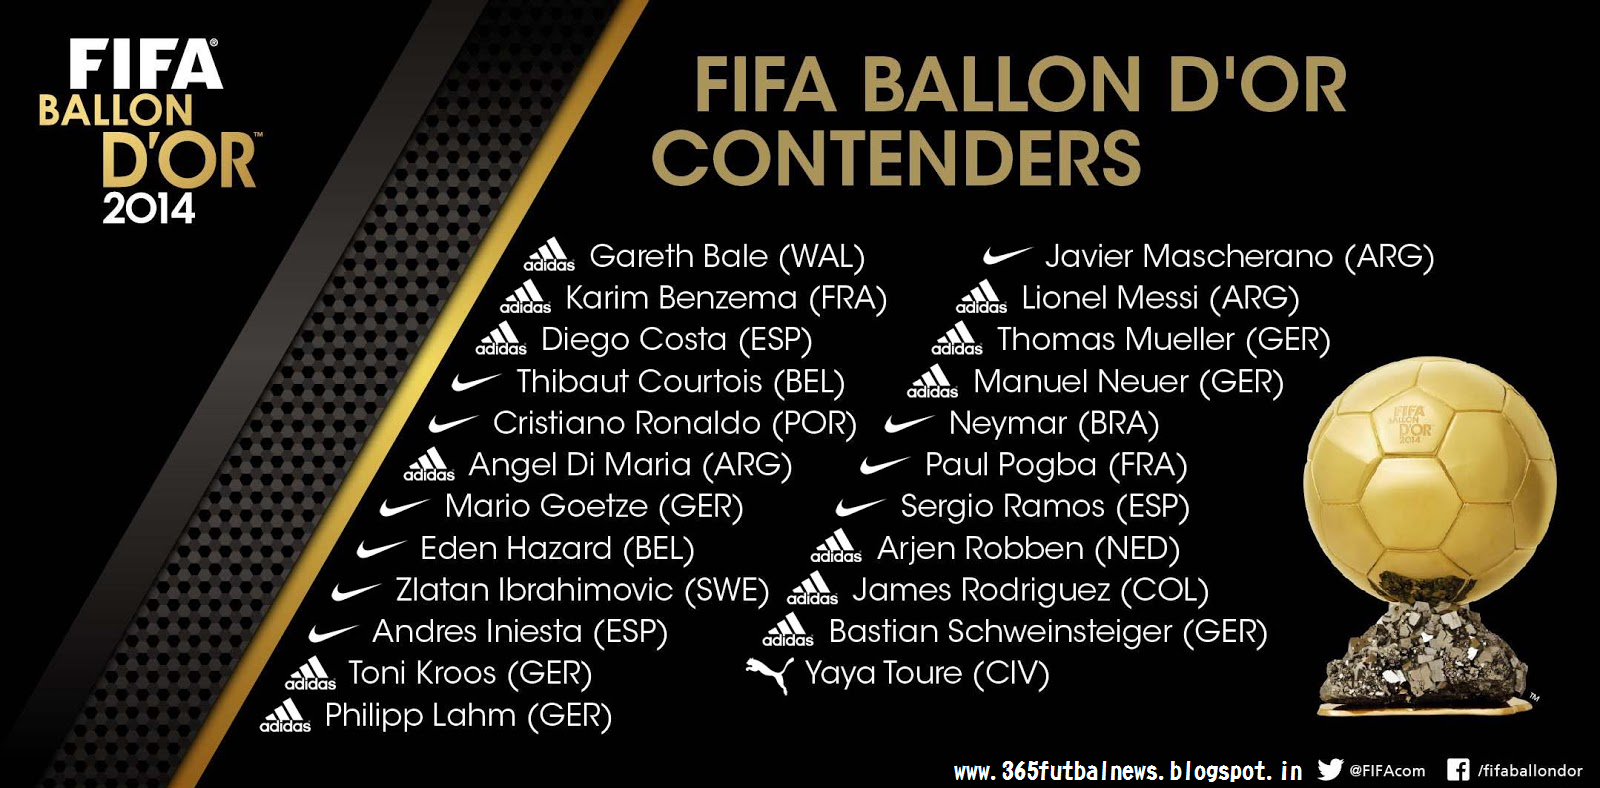 0c4c1c43d36 The Ballon d Or Shortlist includes 23 male nominees for the 2014 FIFA  Ballon d Or